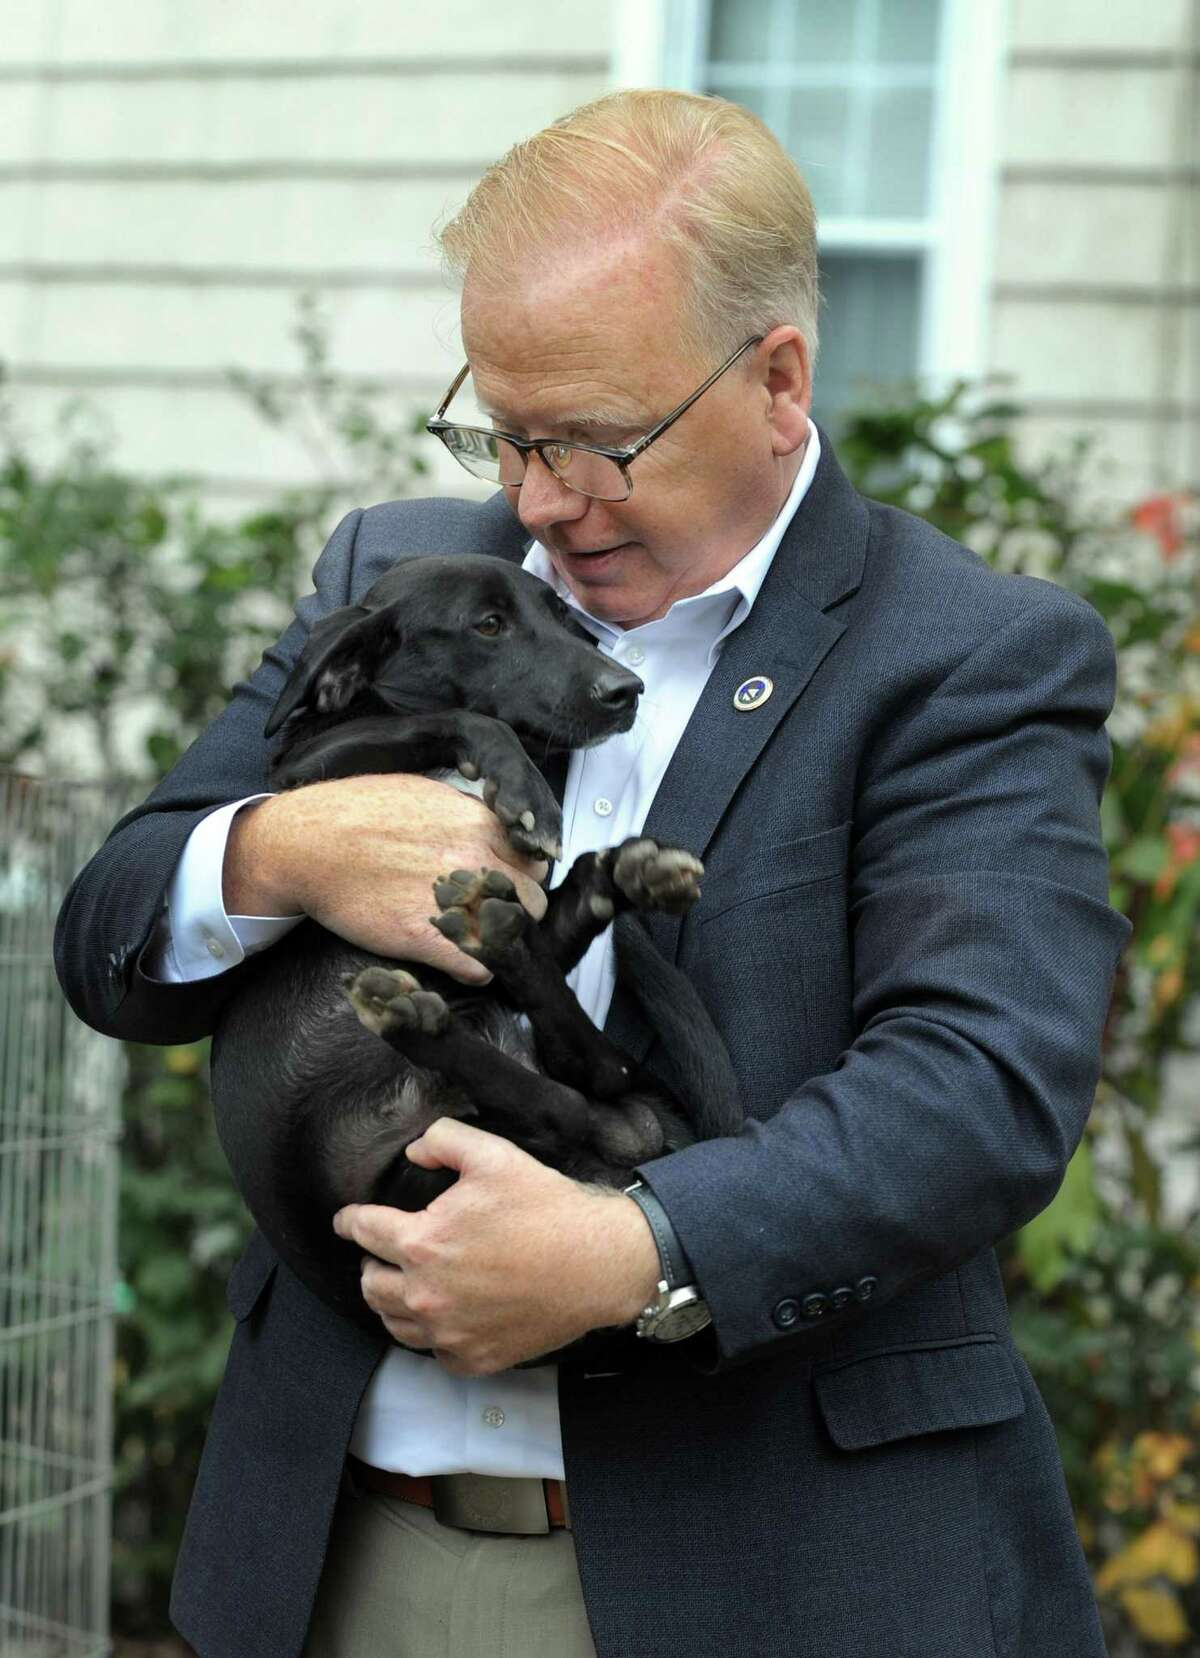 Danbury Mayor Mark Boughton cuddles with a labrador puppy rescued from Puerto Rican by Tails of Courage, on Smith Street in Danbury, Tuesday, Oct. 24, 2017.